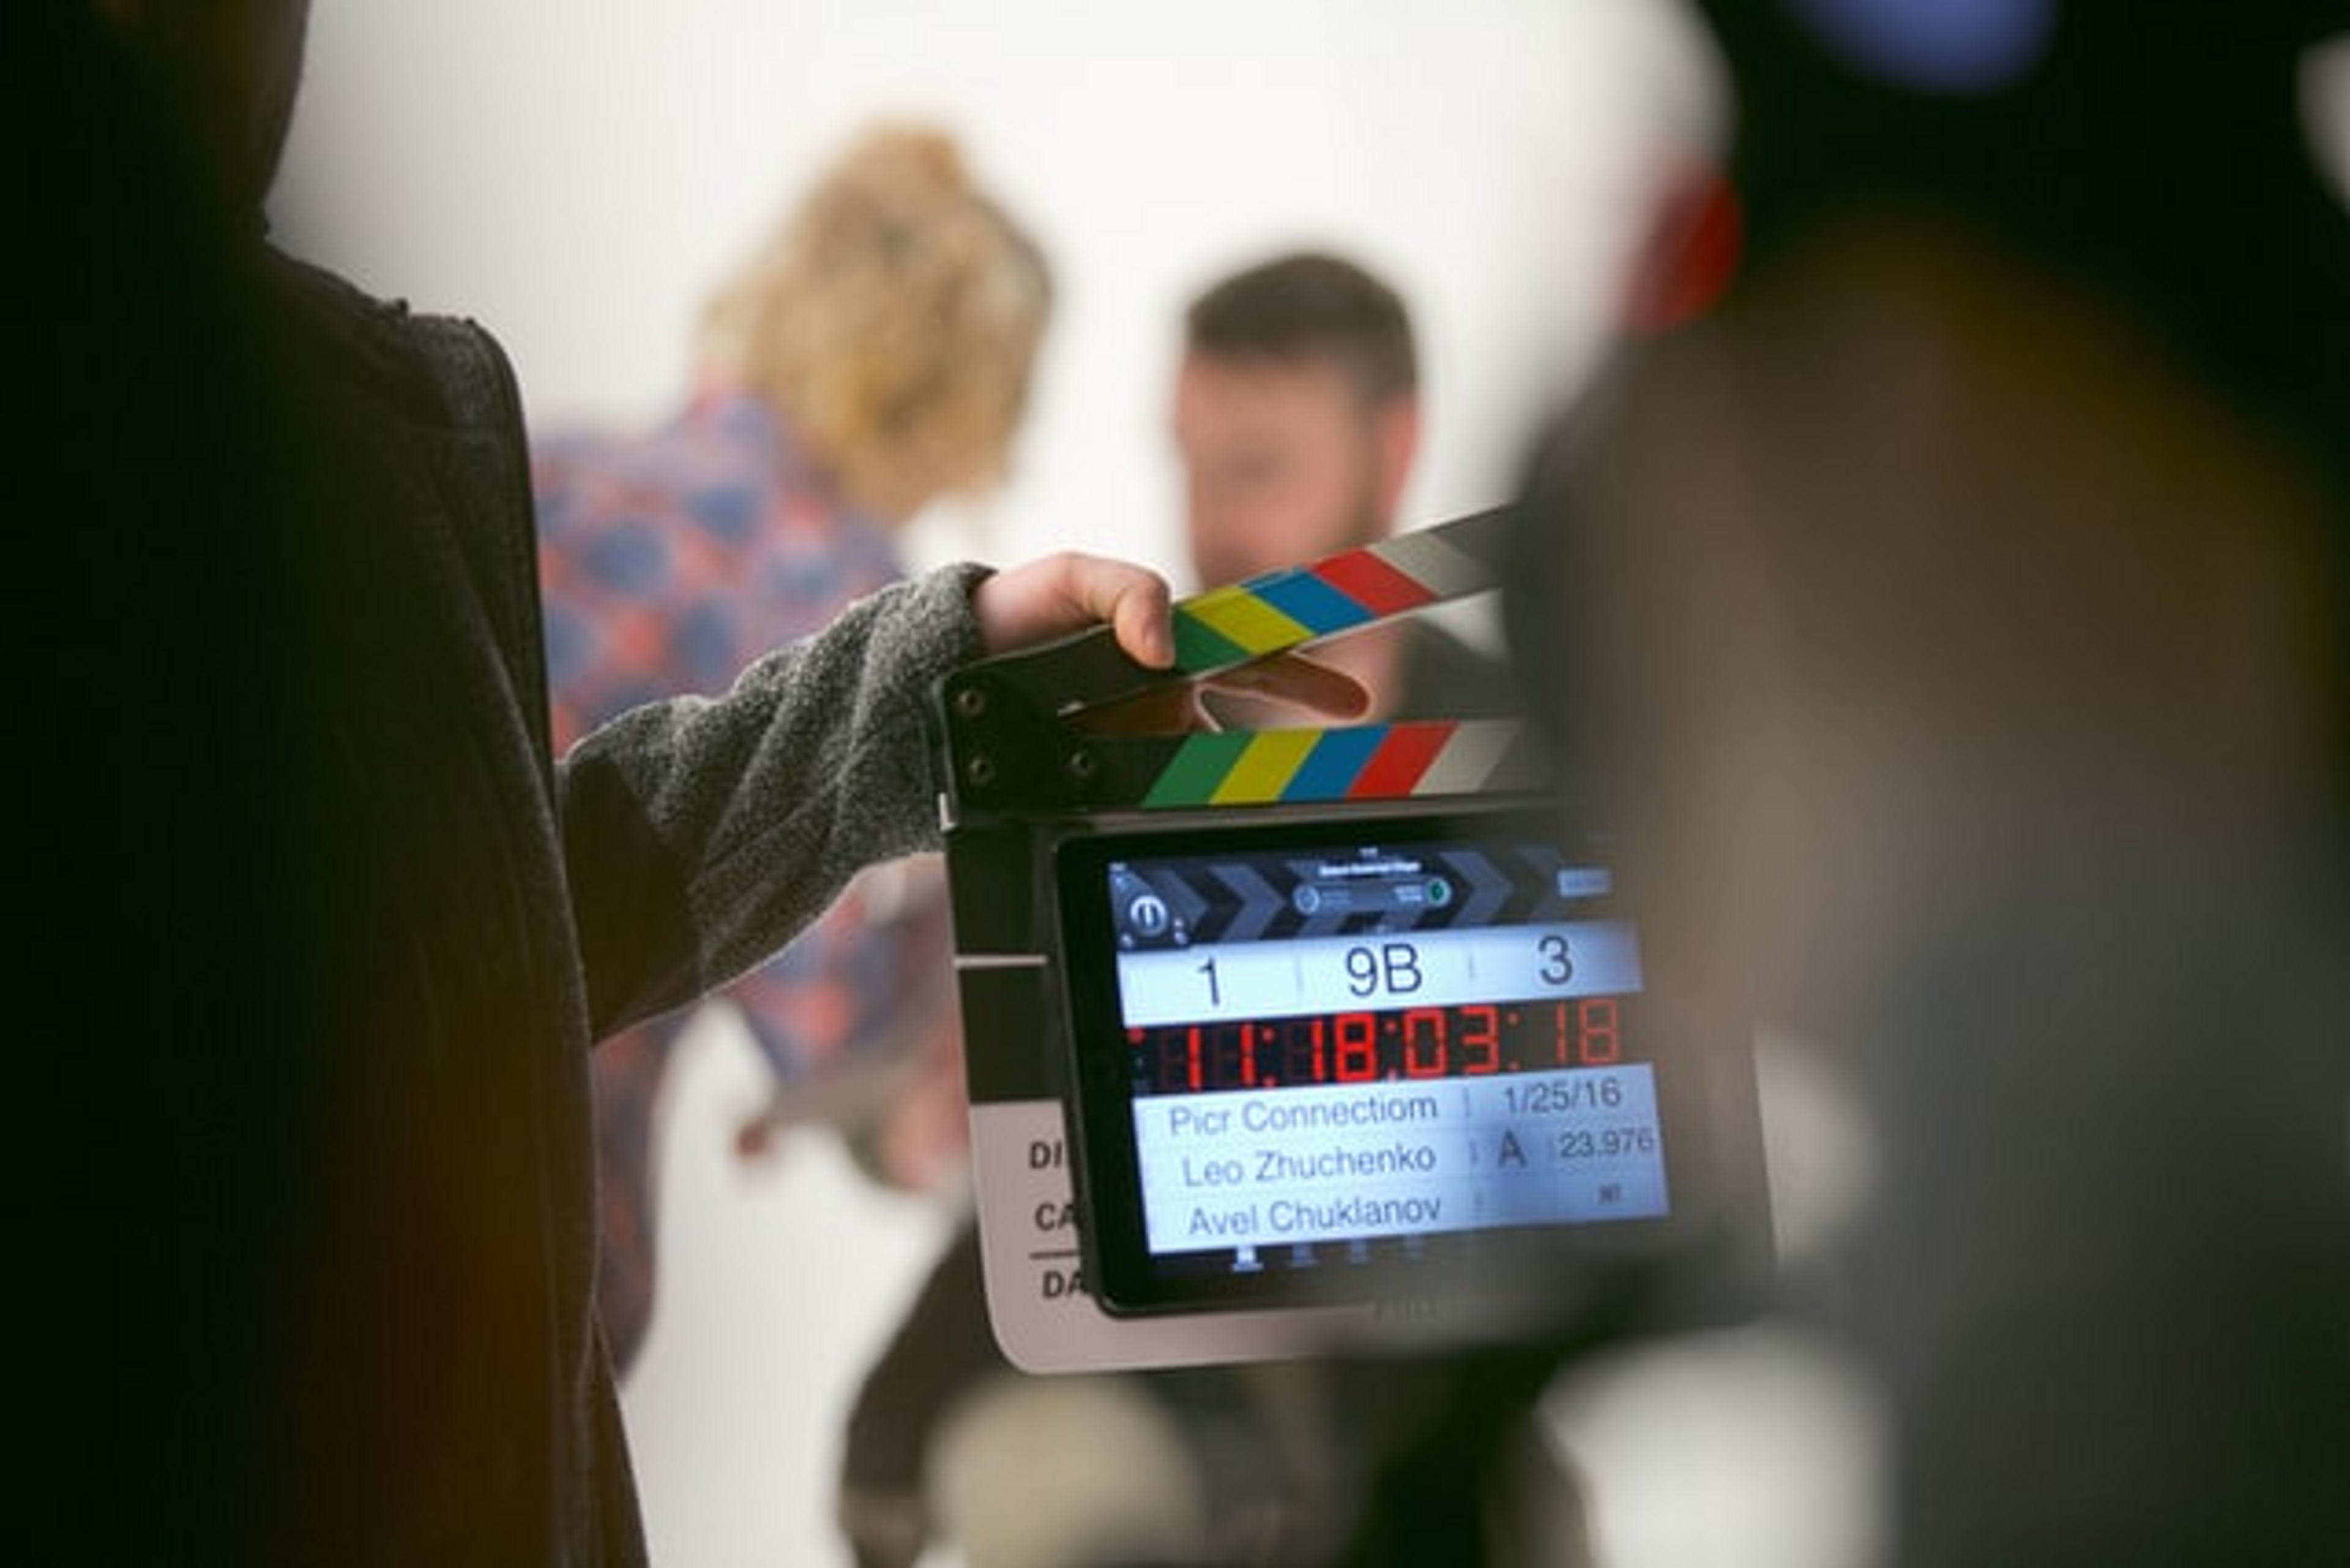 A film slate with actors in the background